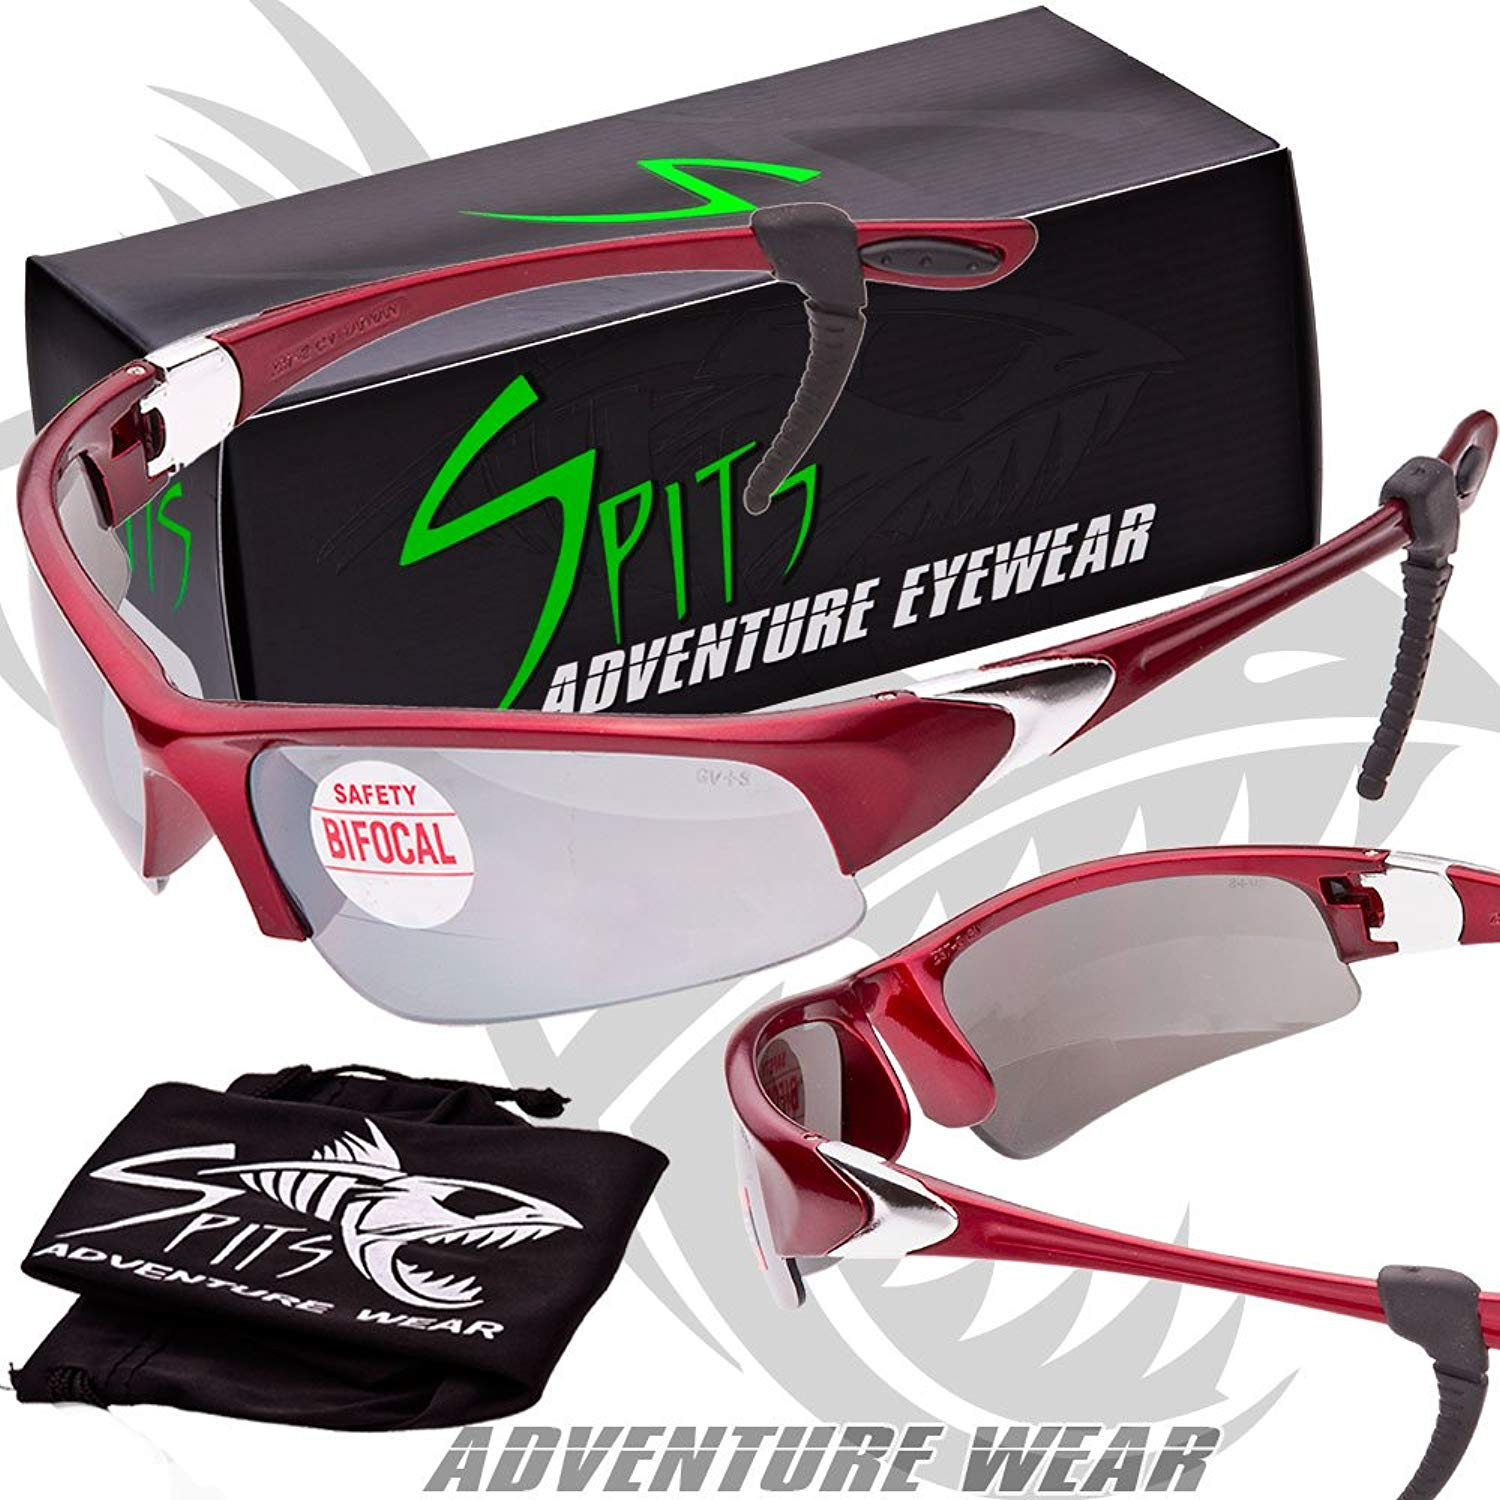 233840fc955 Get Quotations · Velo Spec - Cycling Running 3.00 BIFOCAL Sunglasses - Red  Frame - Flash Mirrored Lenses